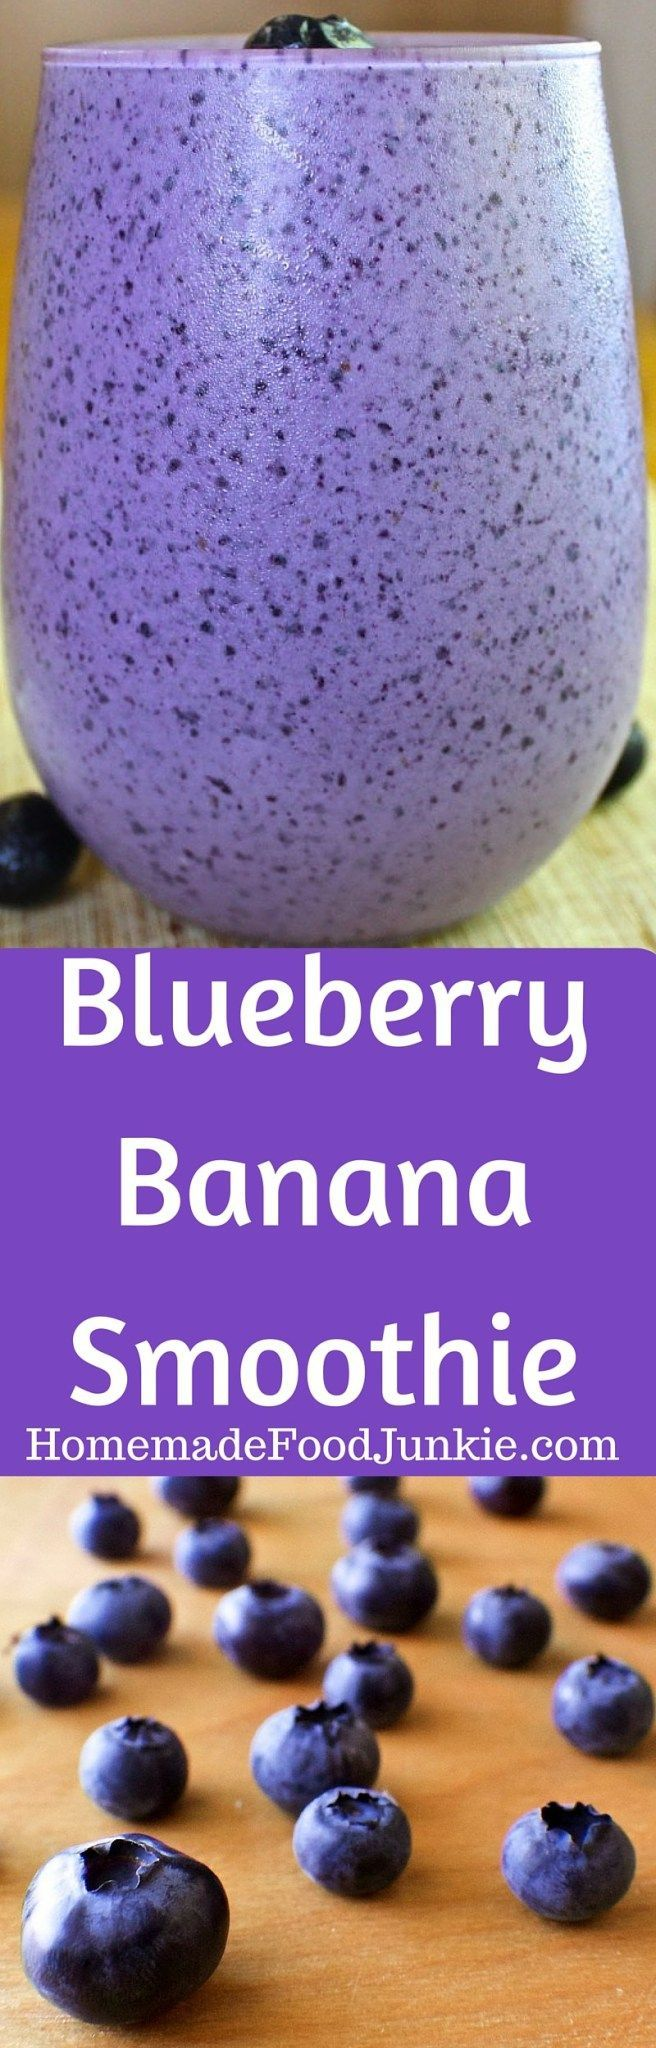 25+ best ideas about Dairy free smoothie on Pinterest ...